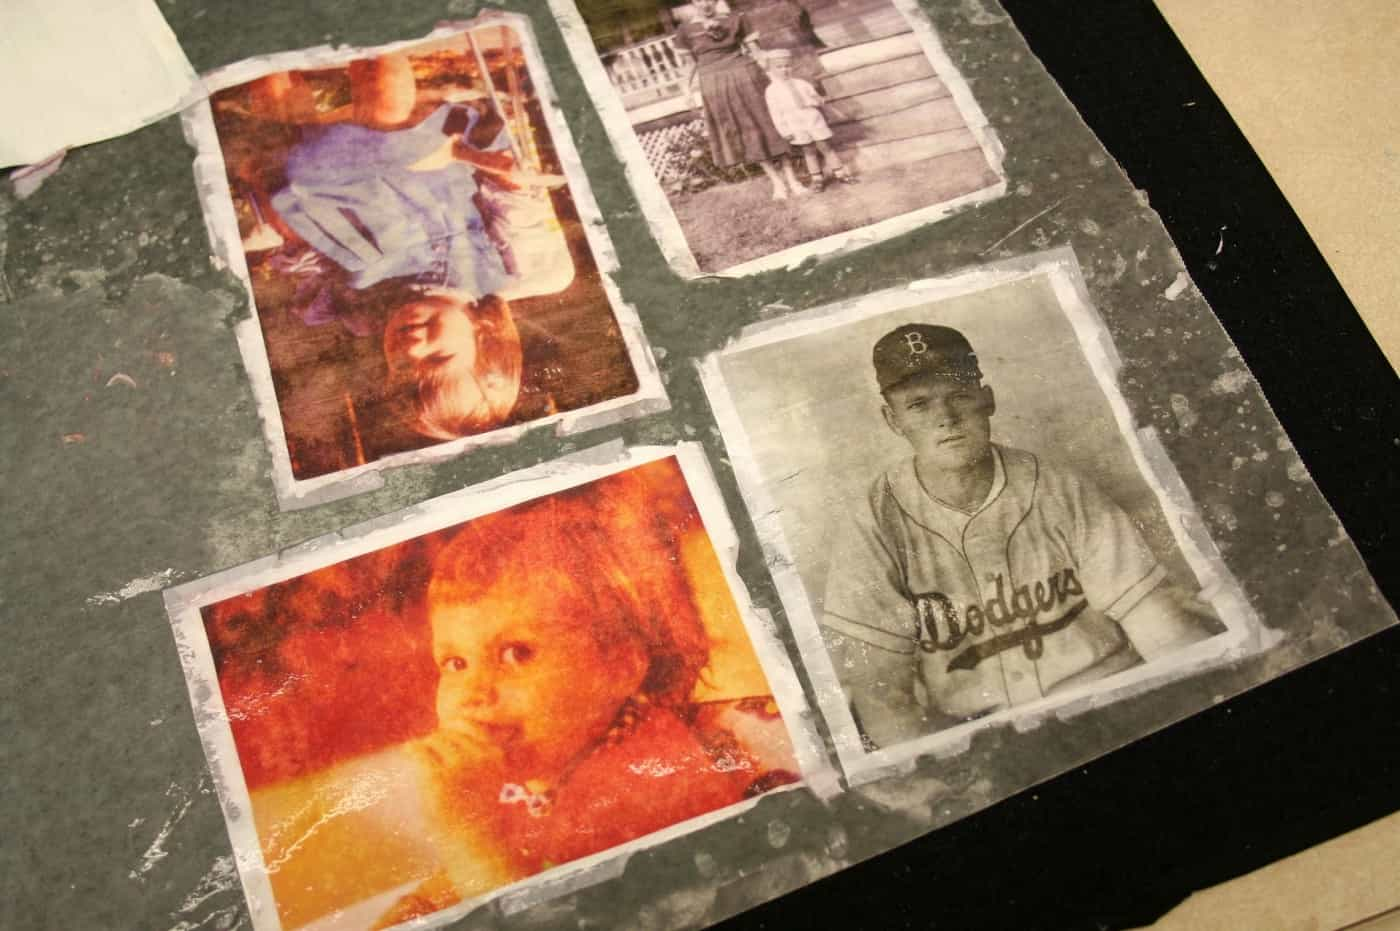 Images created using the Mod Podge photo transfer decal method